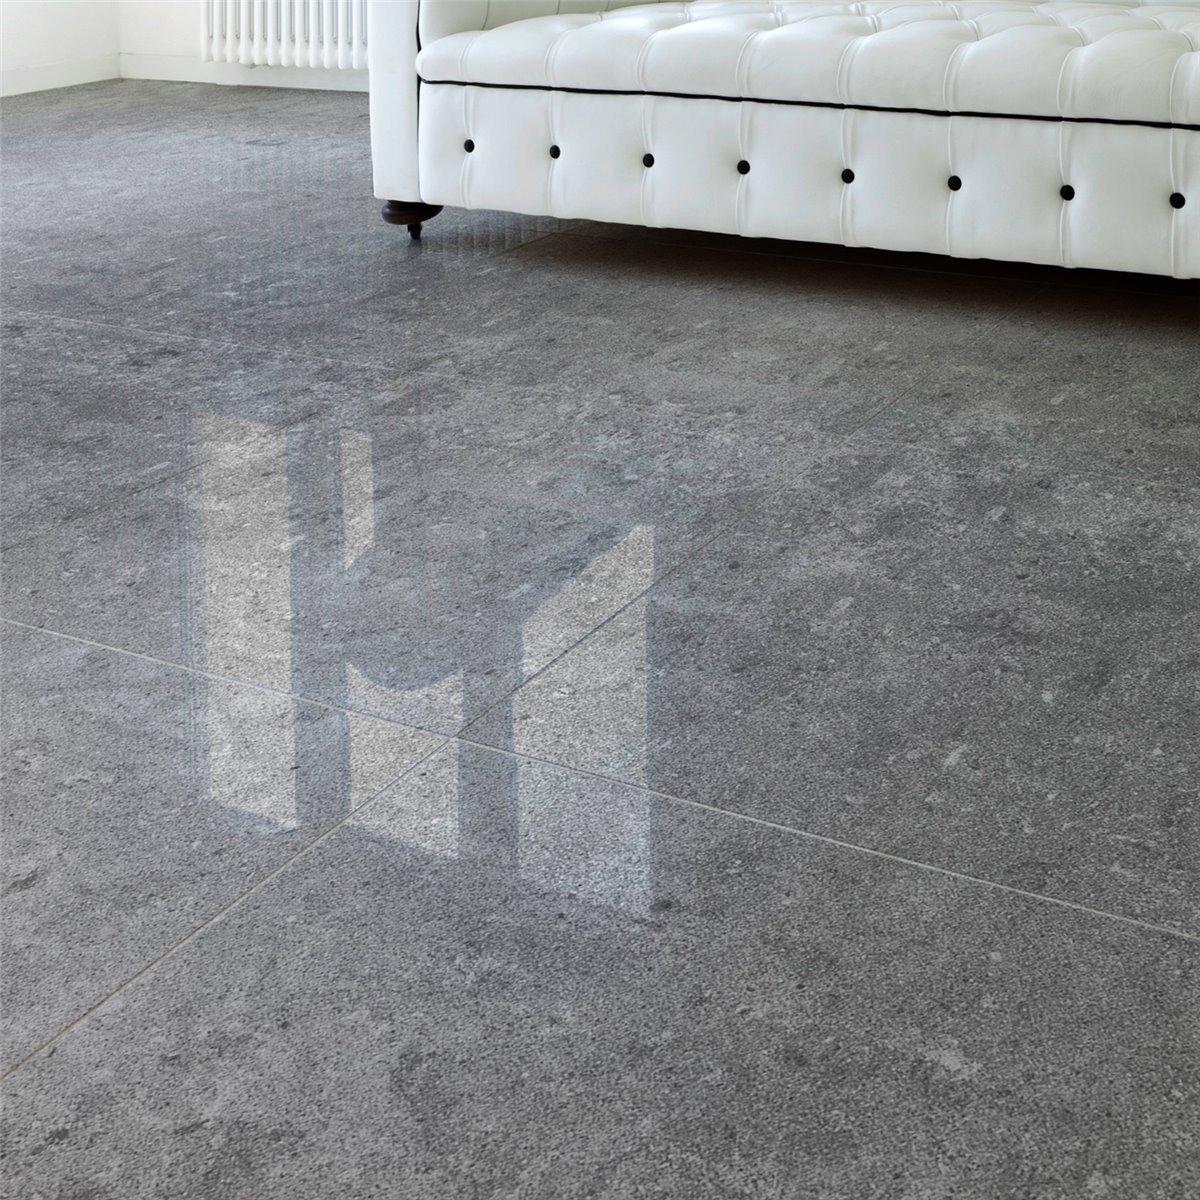 Porcelain stoneware floor tiles nairobi dark grey polished www floor tiles nairobi polished mat dailygadgetfo Image collections